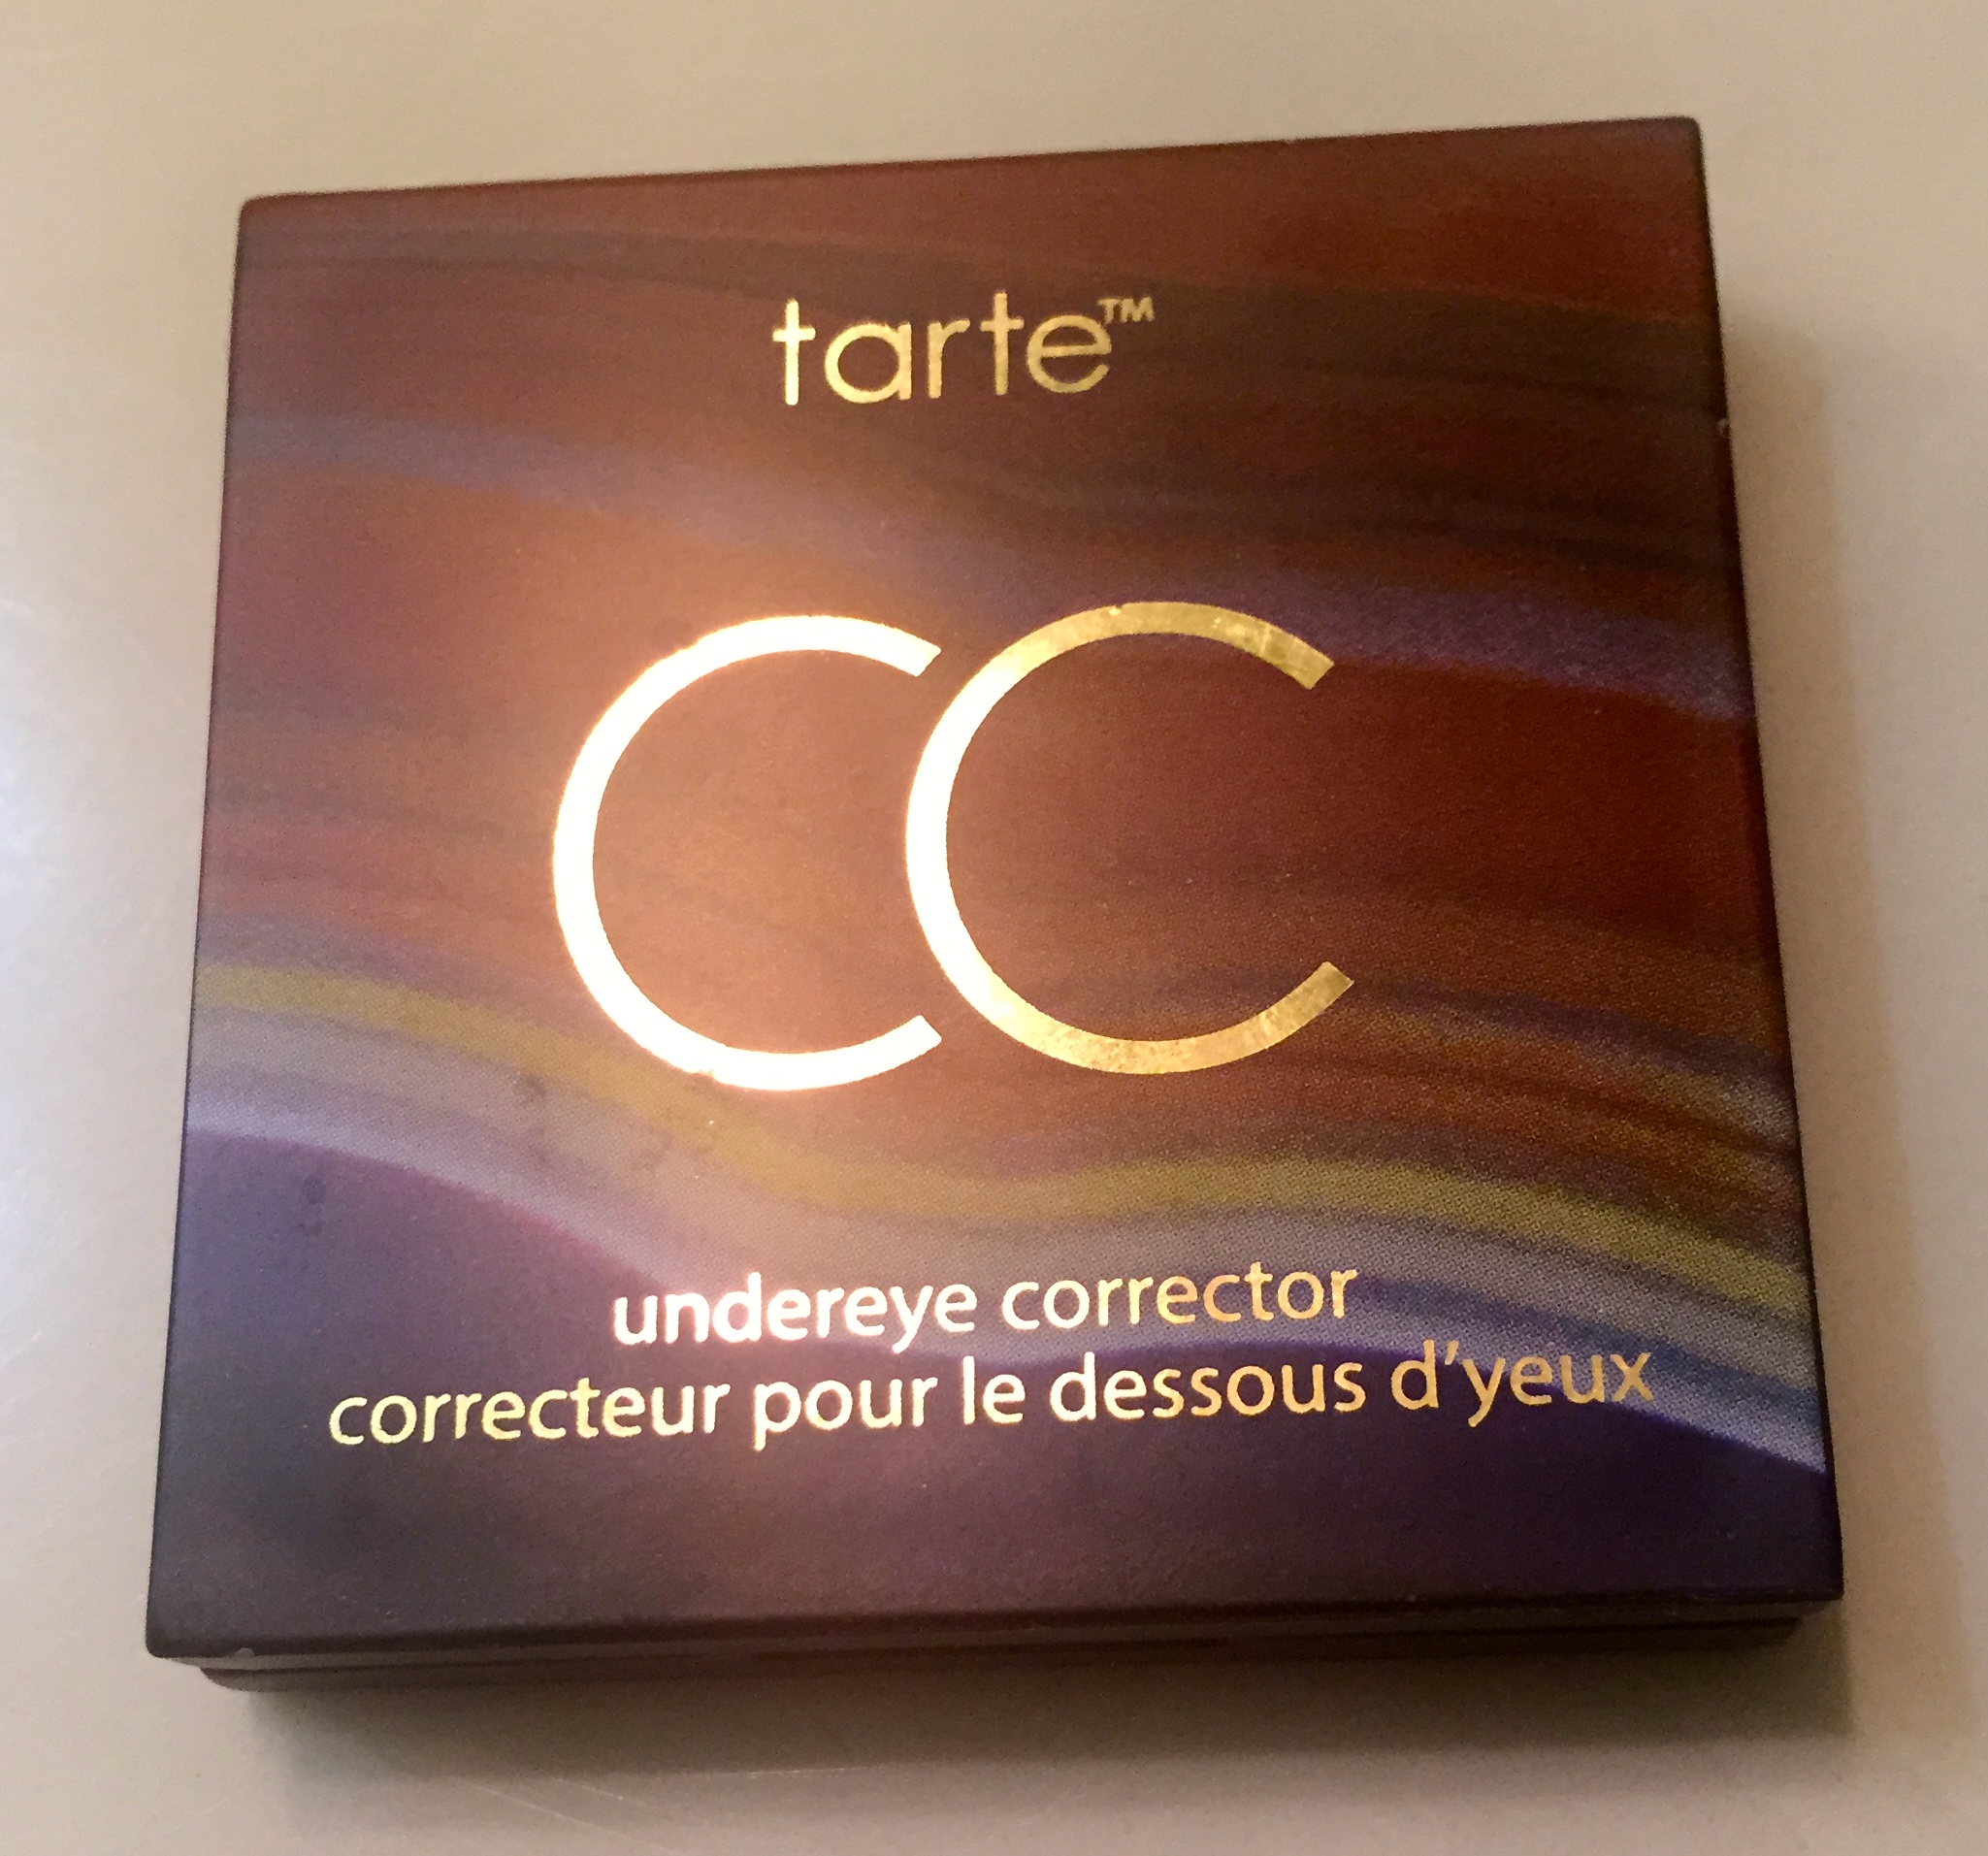 Colored Clay CC Undereye Corrector by Tarte #15